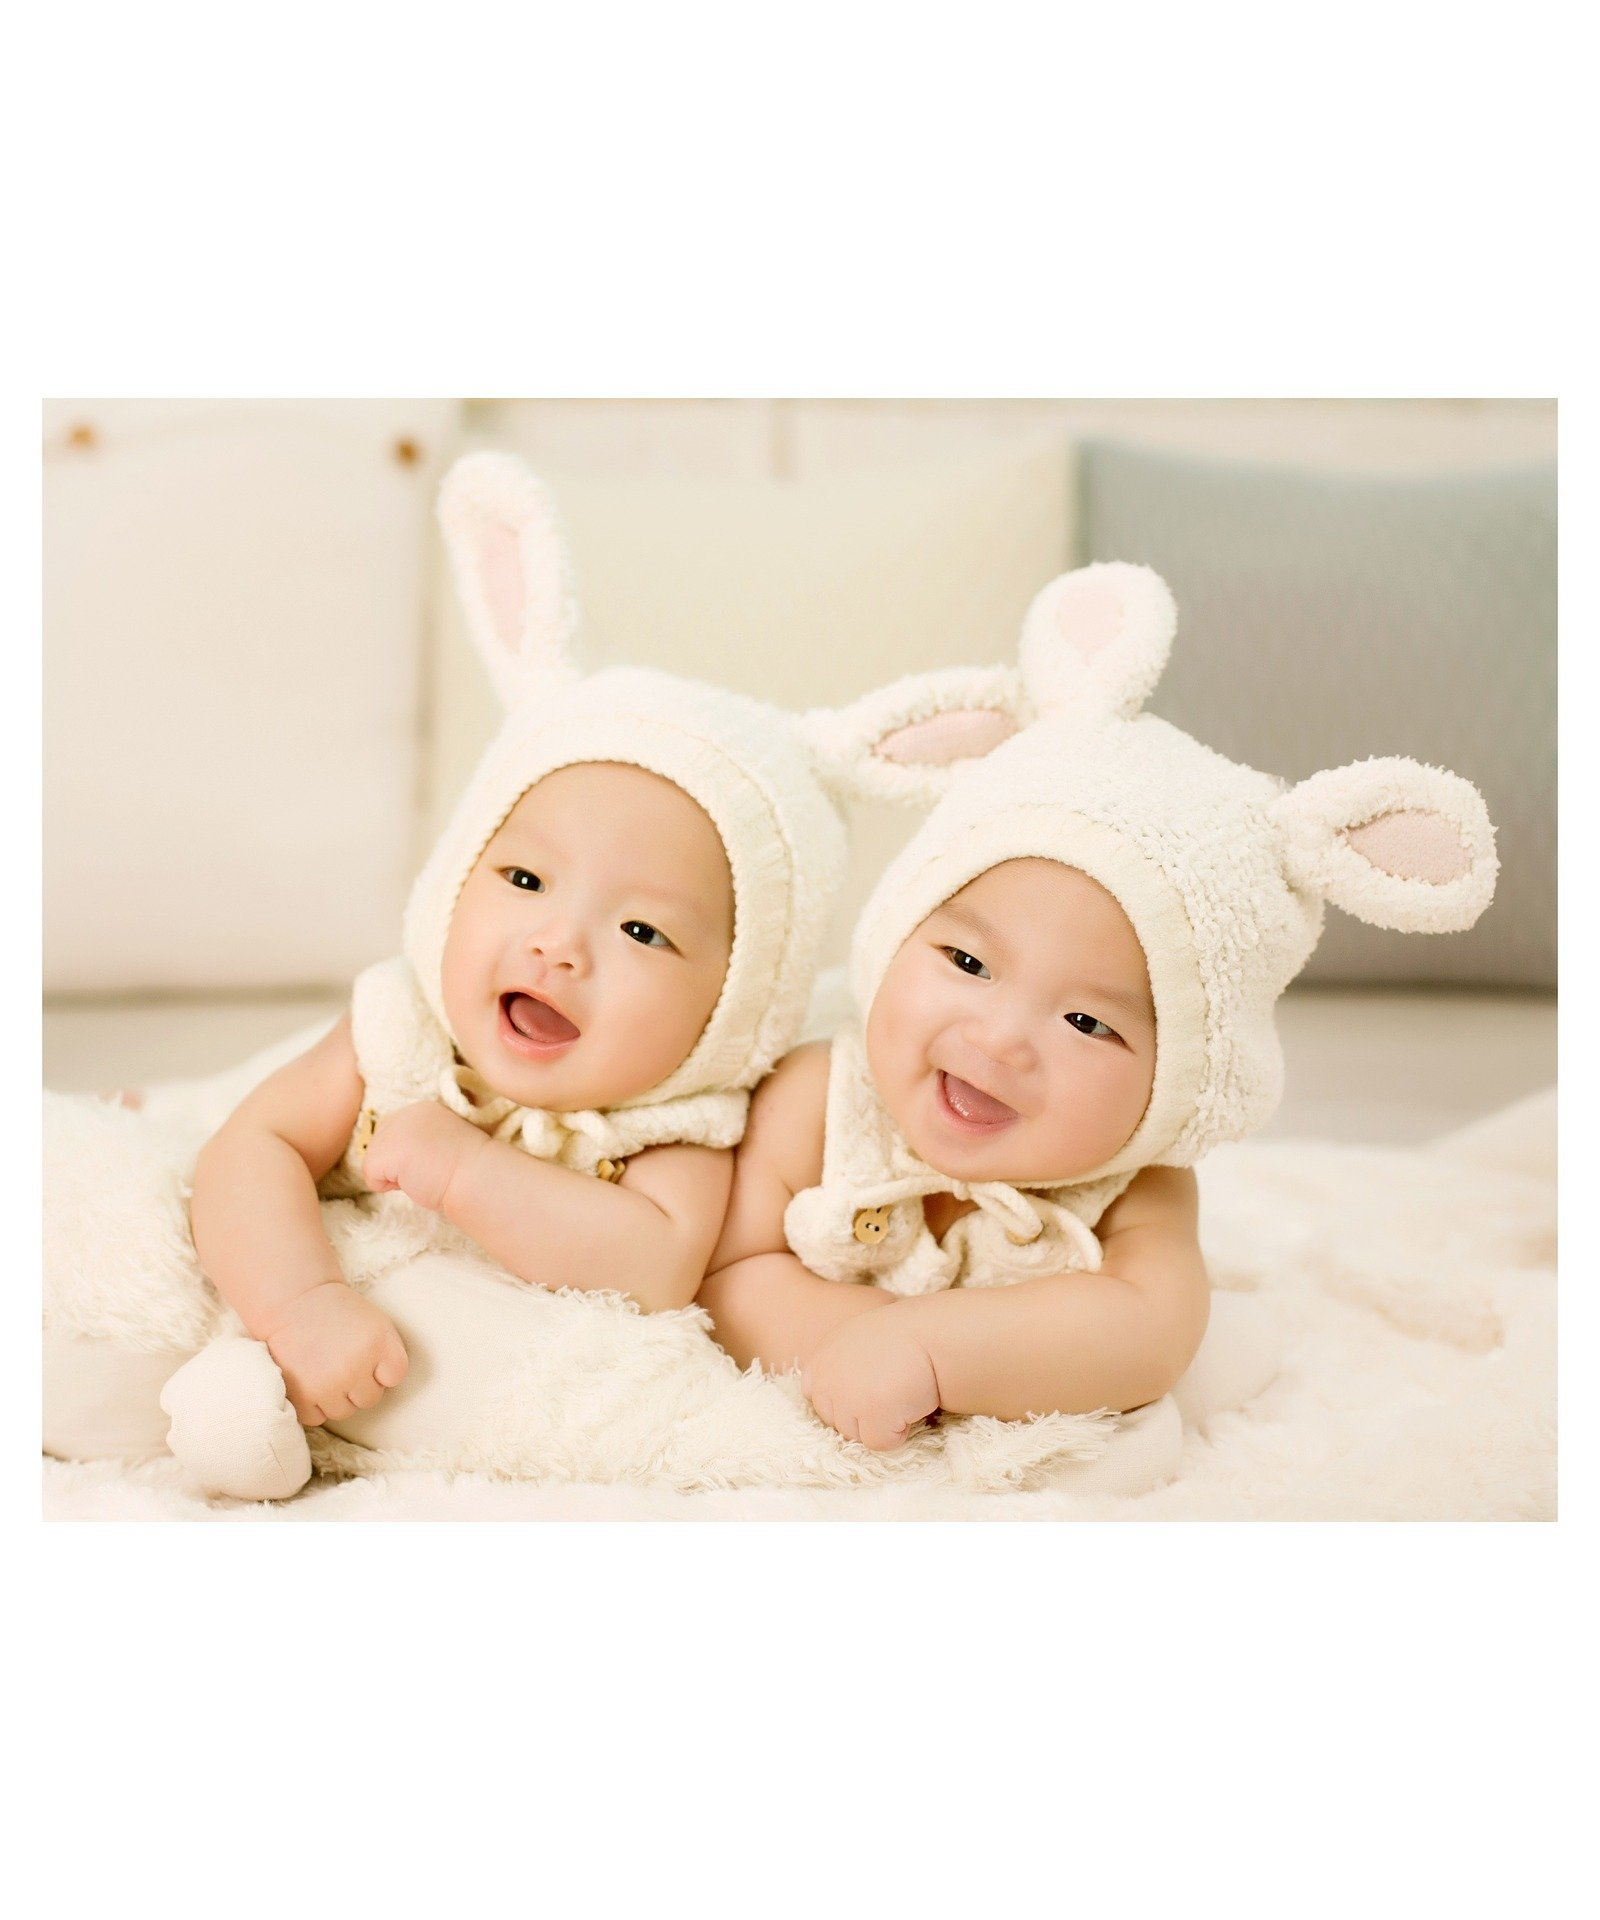 identical twins can share more than identical genes